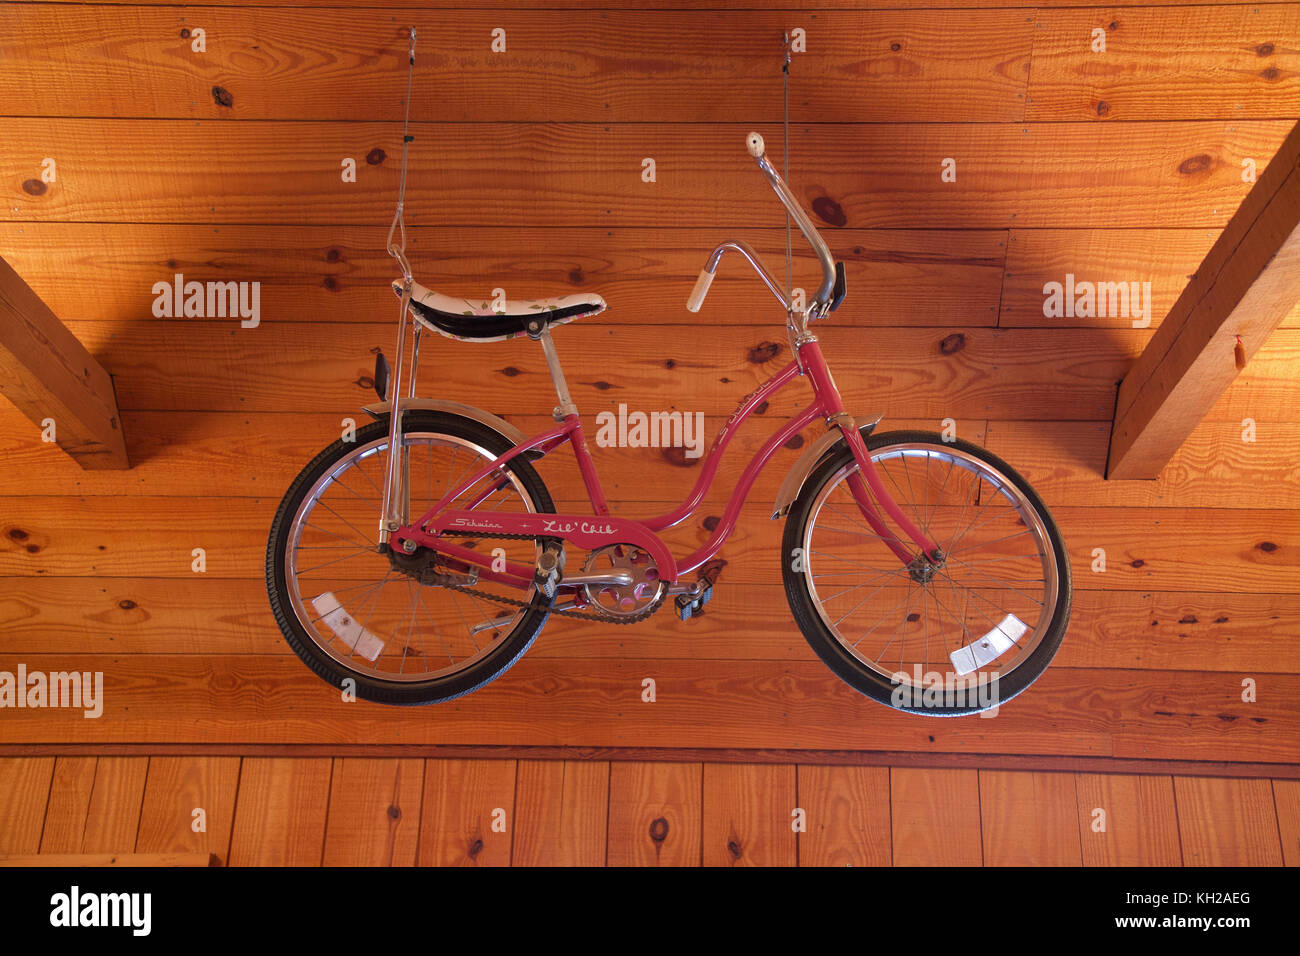 Schwinn Stock Photos & Schwinn Stock Images - Alamy